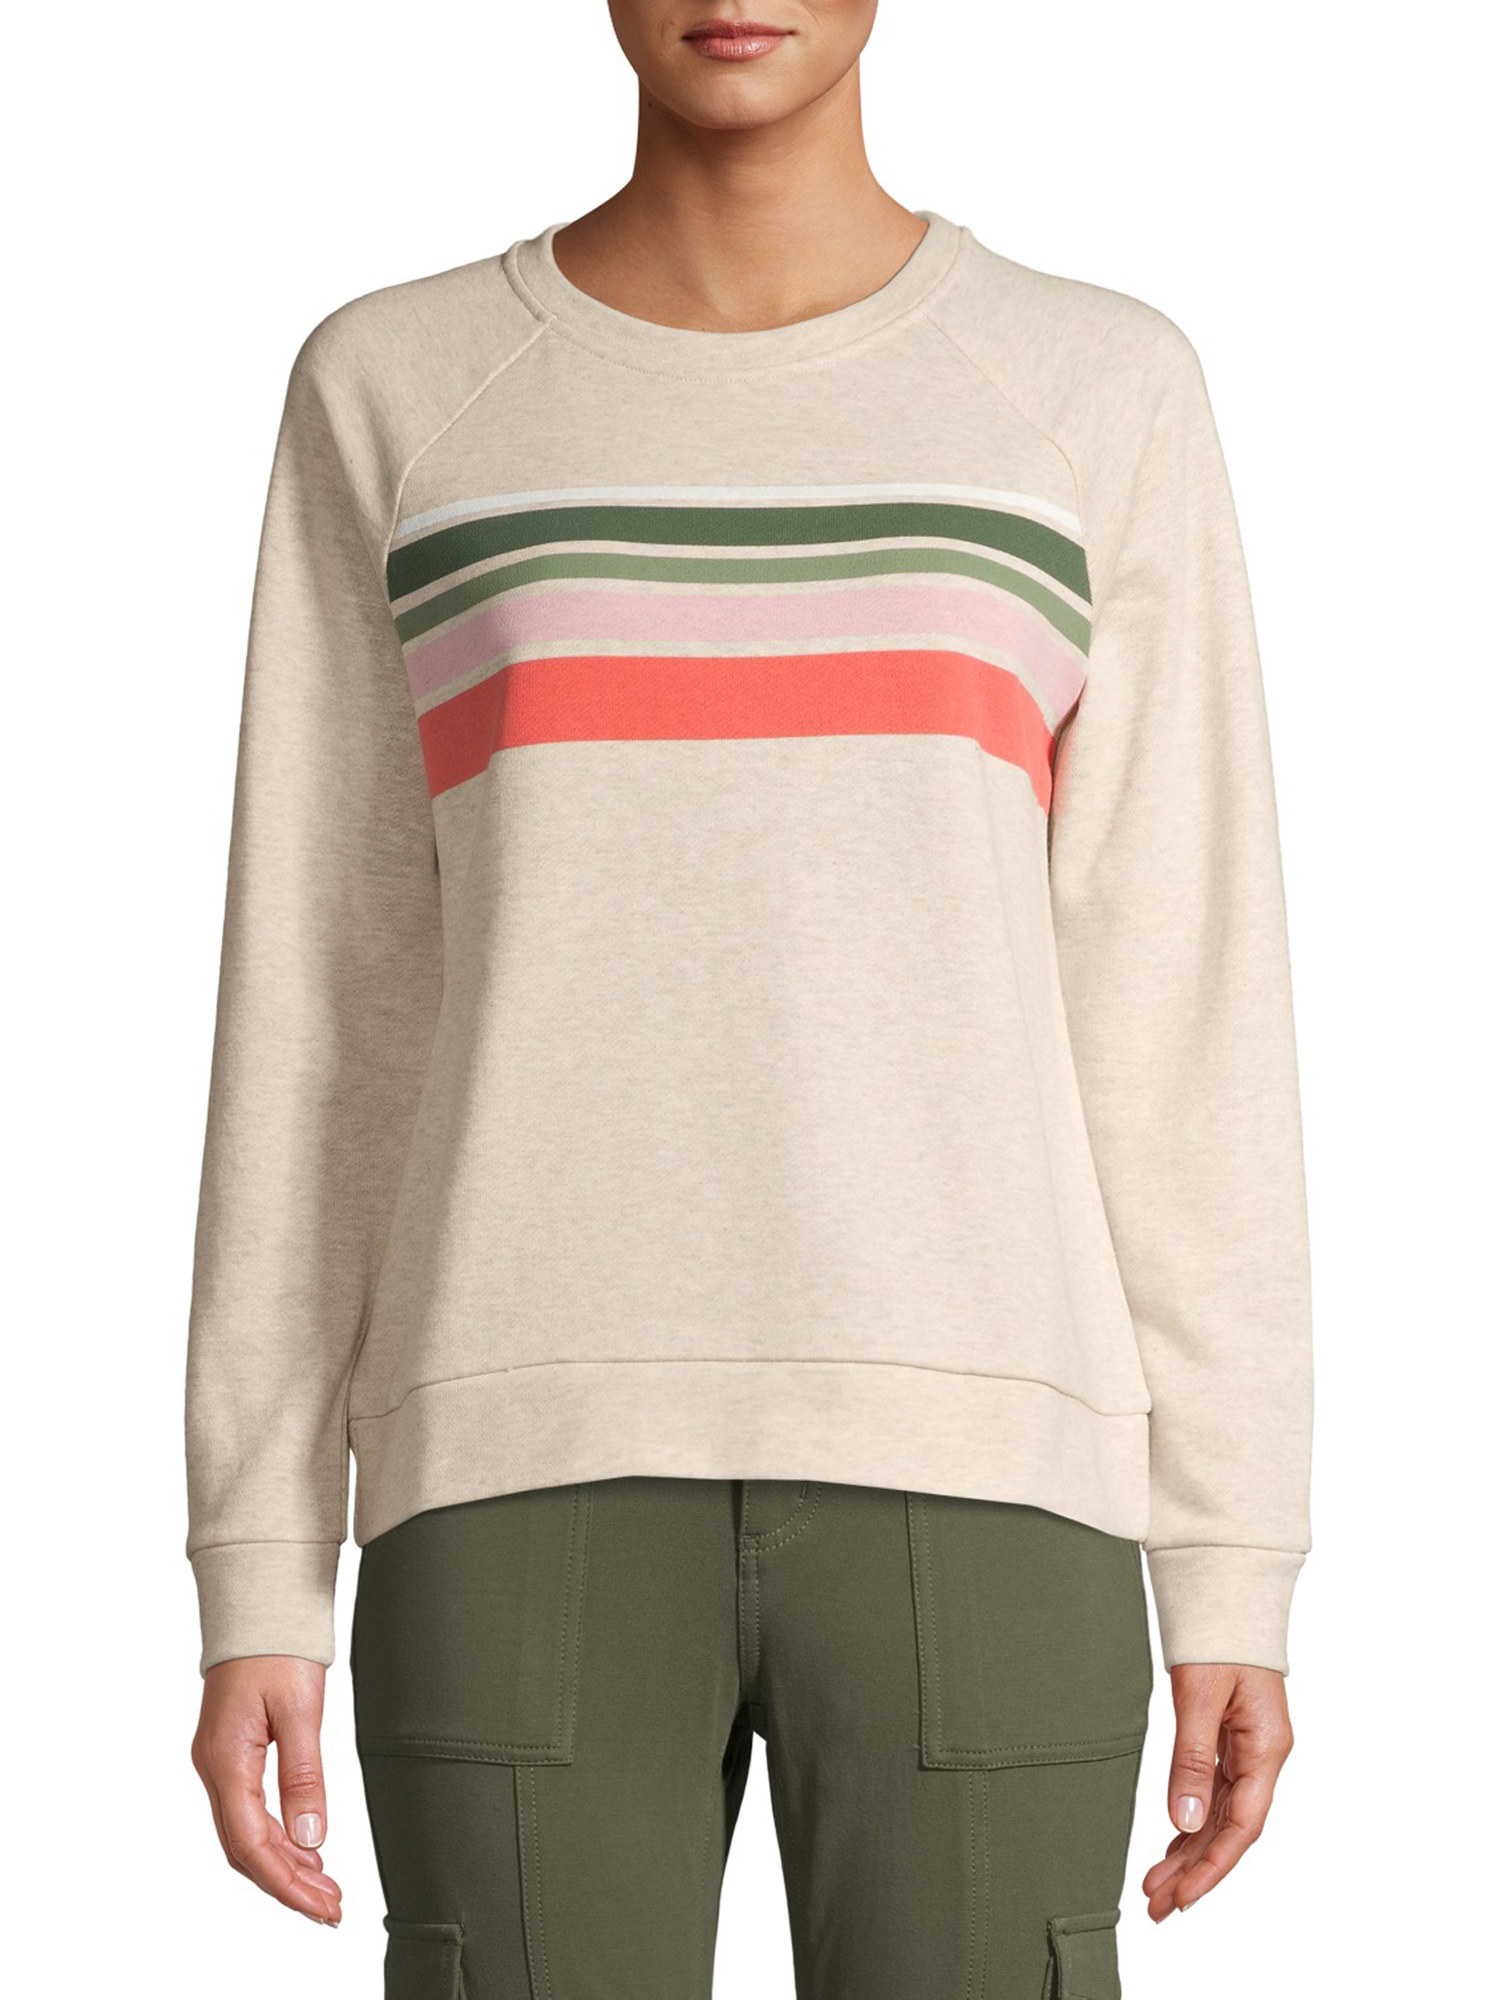 A model wearing the tan sweatshirt with green and pink stripes